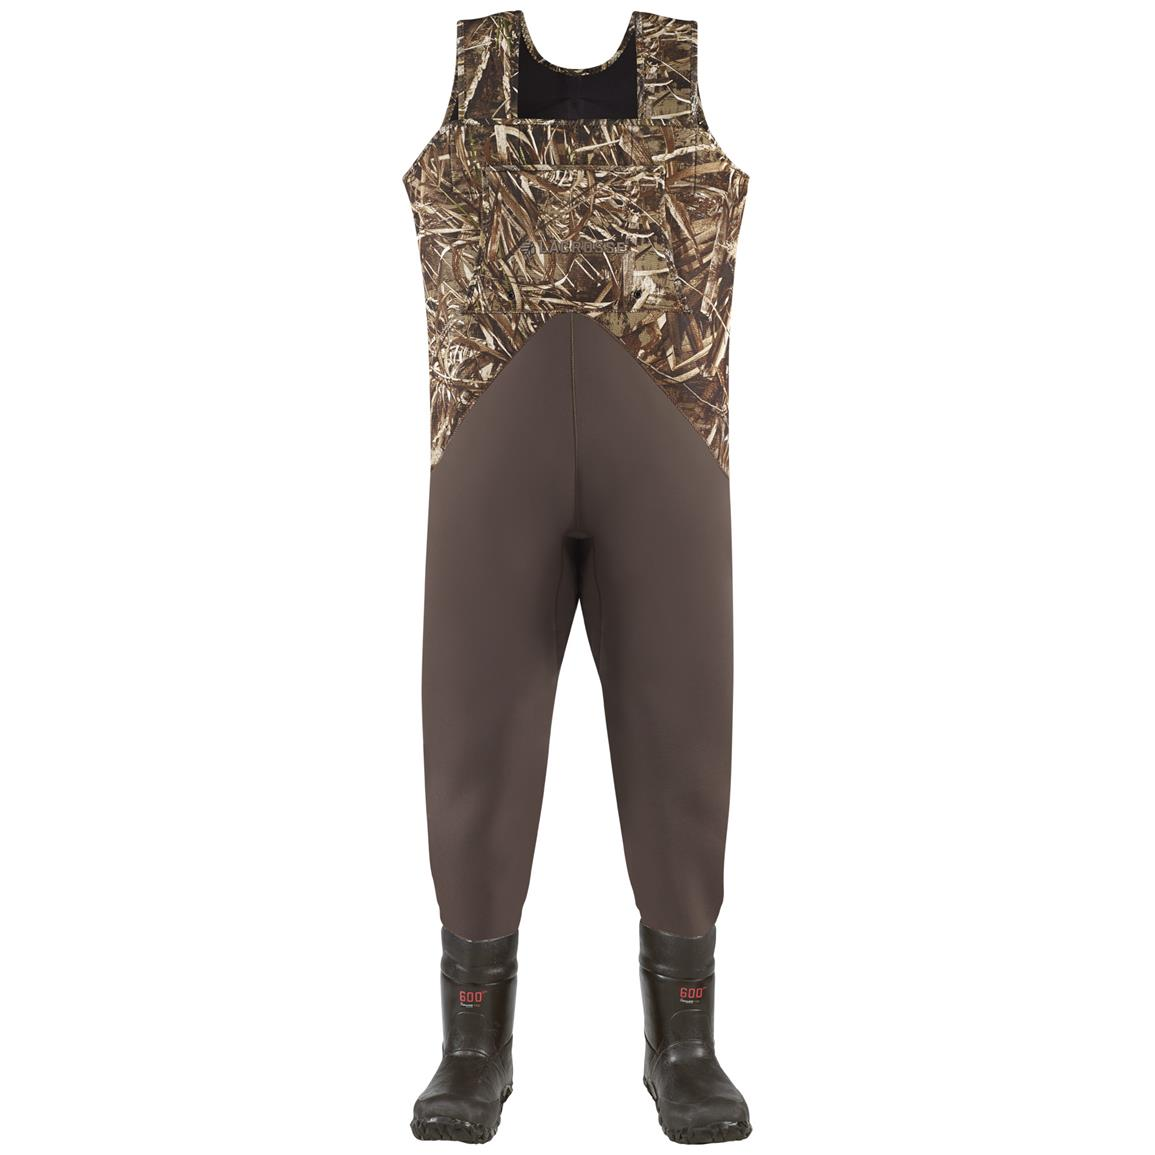 Men's Lacrosse 600 Gram Thinsulate Ultra Teal II Waders, Realtree MAX-5 Camo - Front view